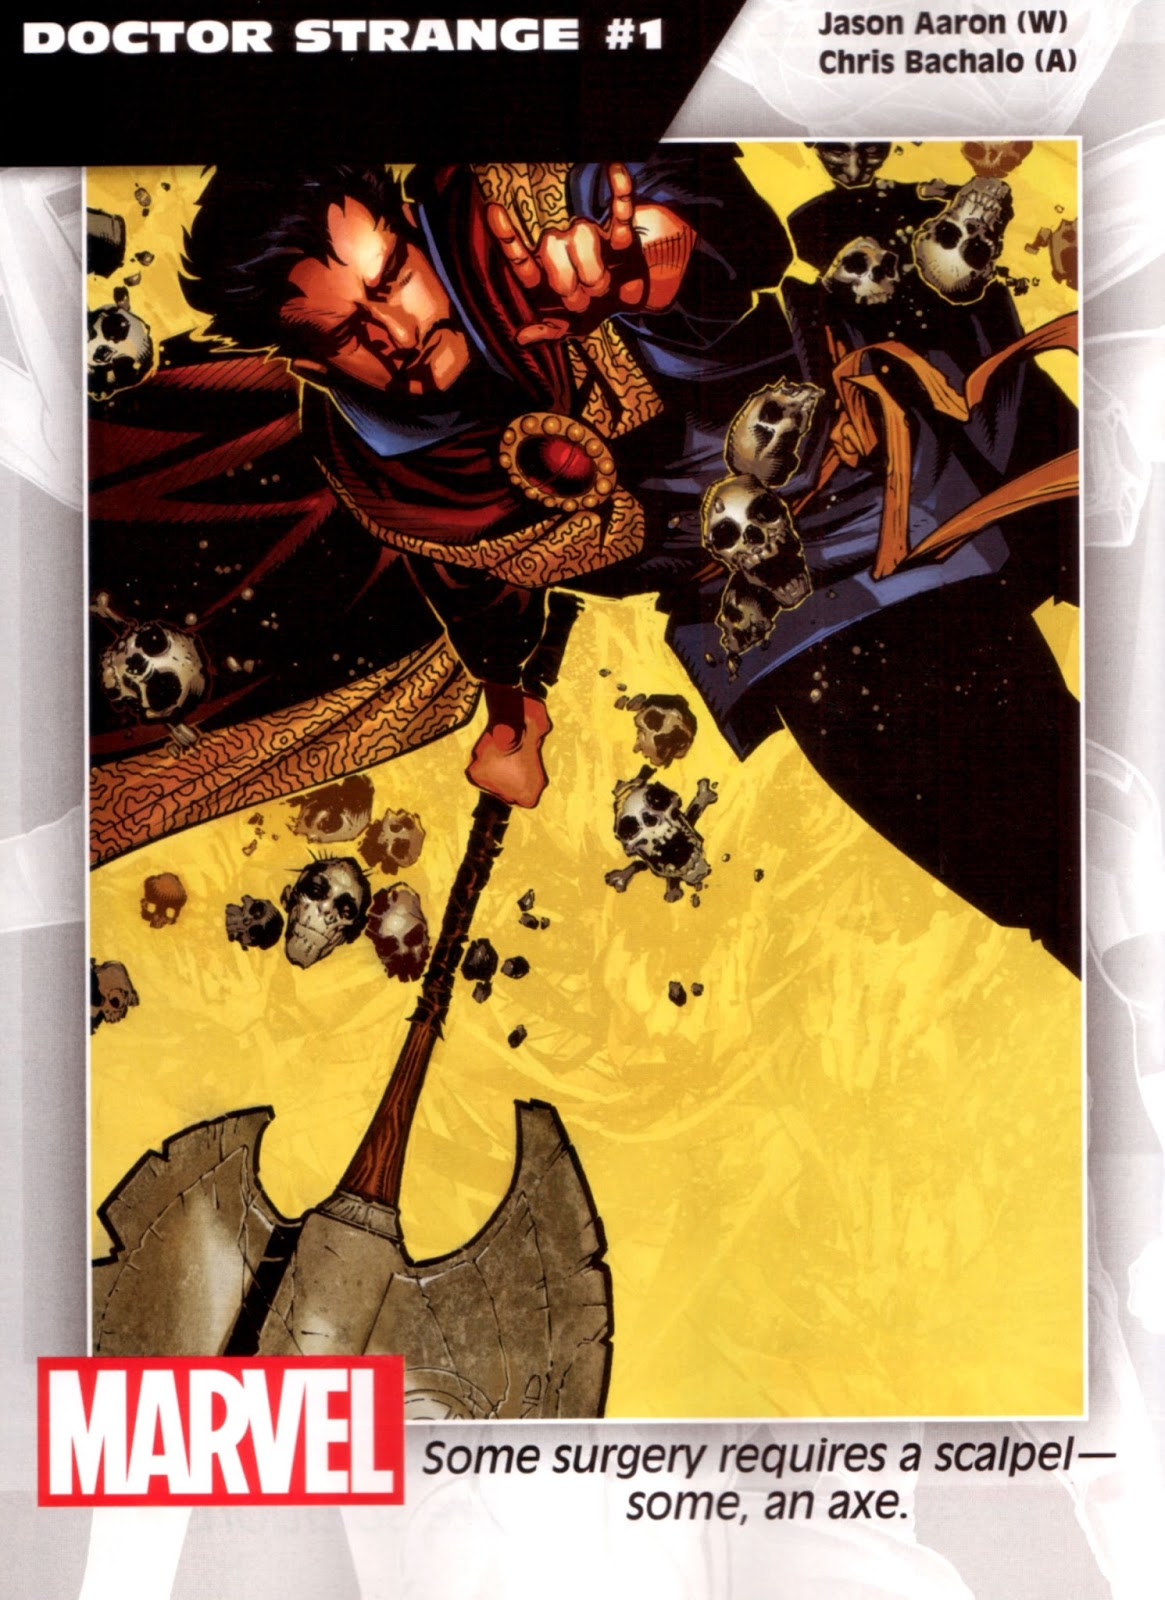 Slay Monstrobot Of The Deep This Is Why Doctor Strange